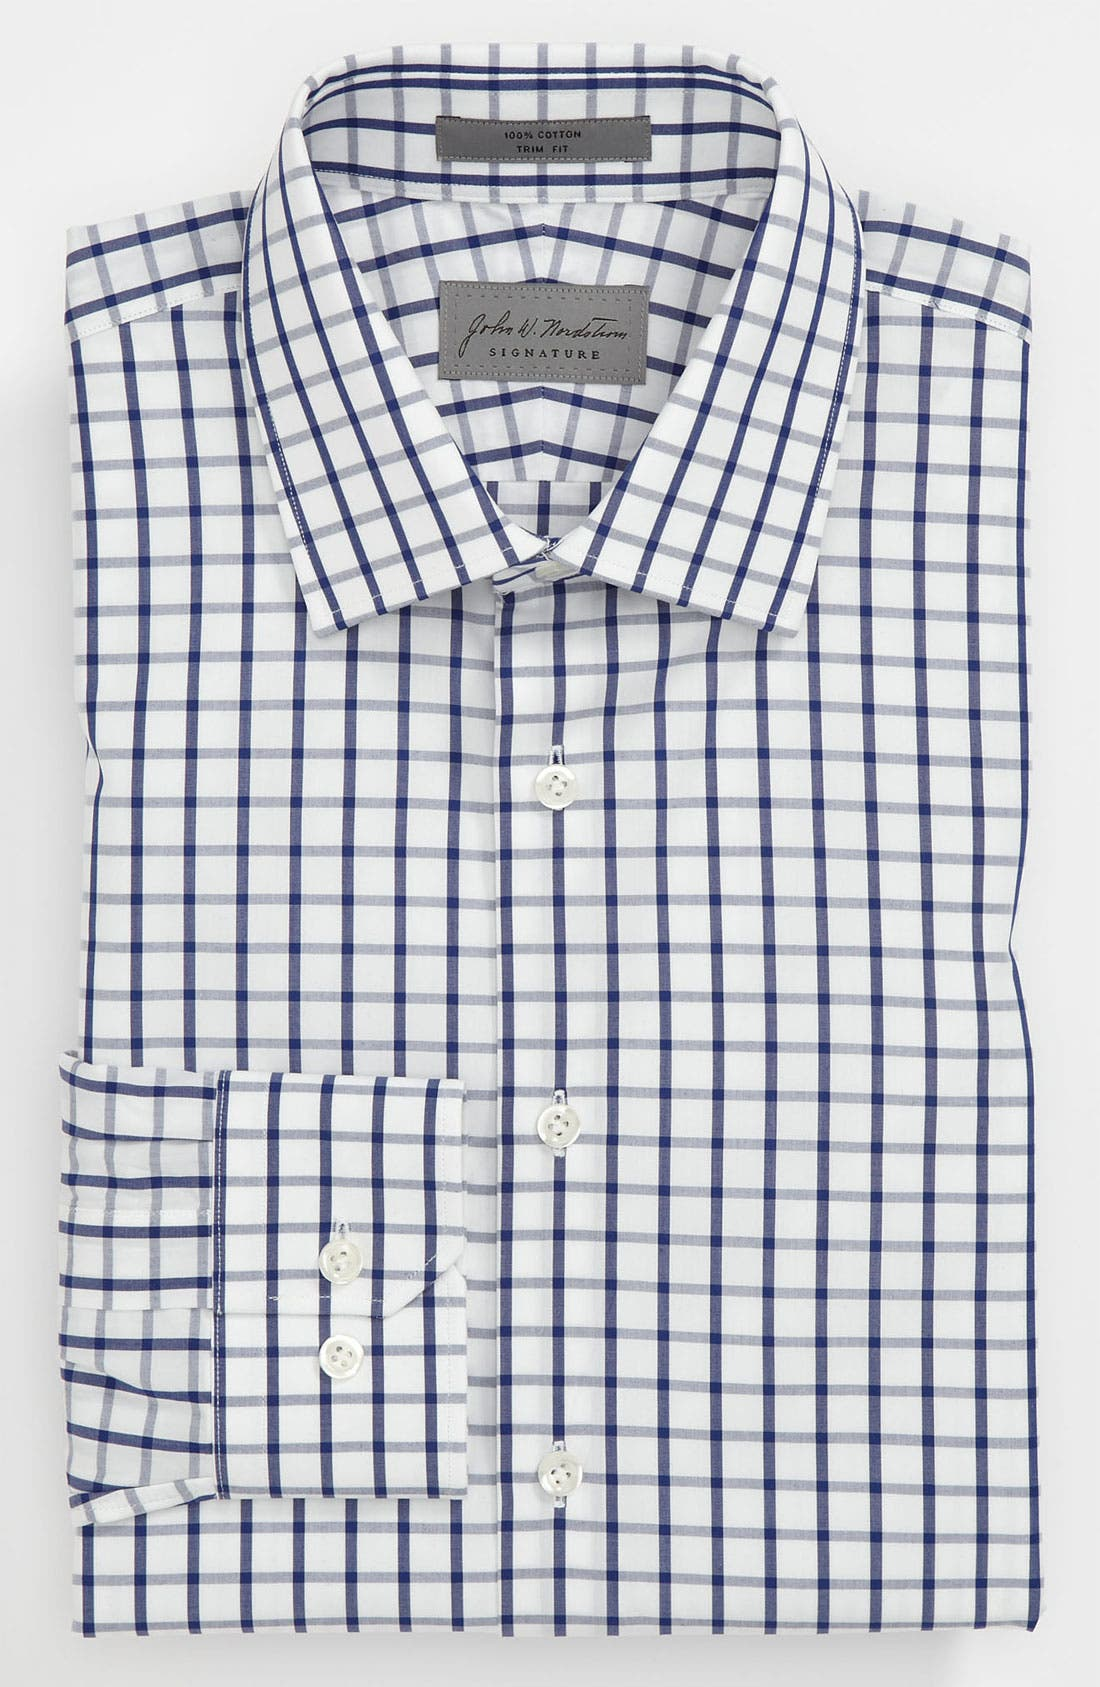 Alternate Image 1 Selected - John W. Nordstrom® Signature Trim Fit Dress Shirt (Online Only)